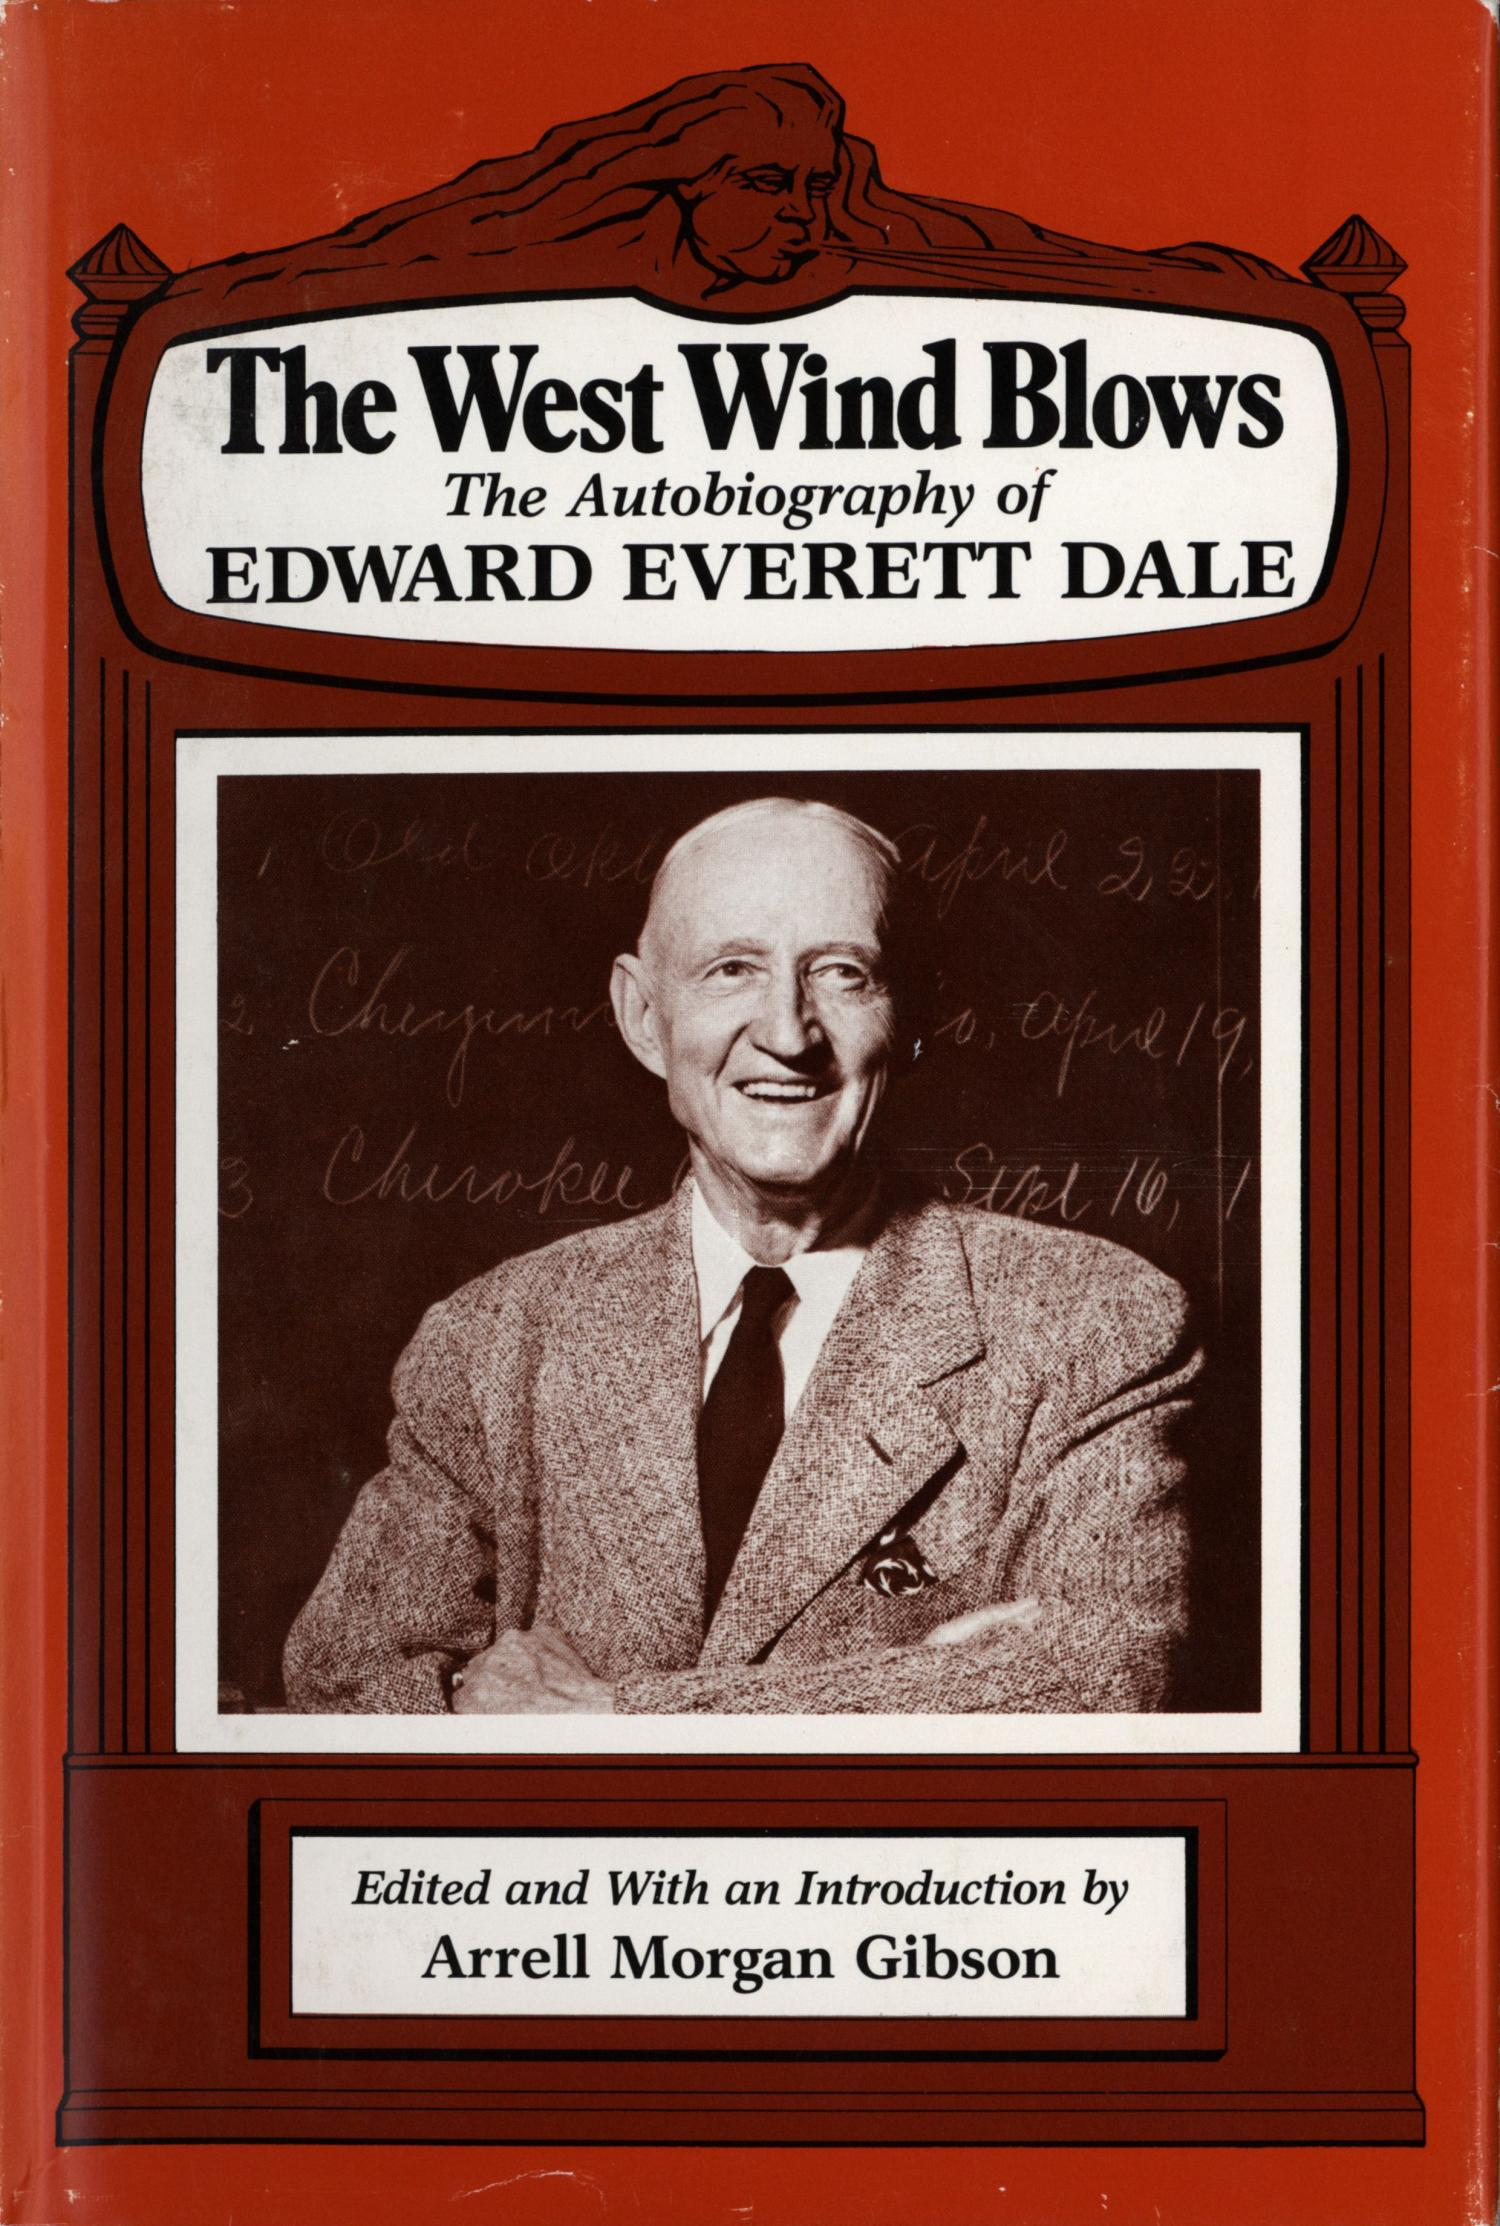 The West Wind Blows: The Autobiography of Edward Everett Dale                                                                                                      Front Cover